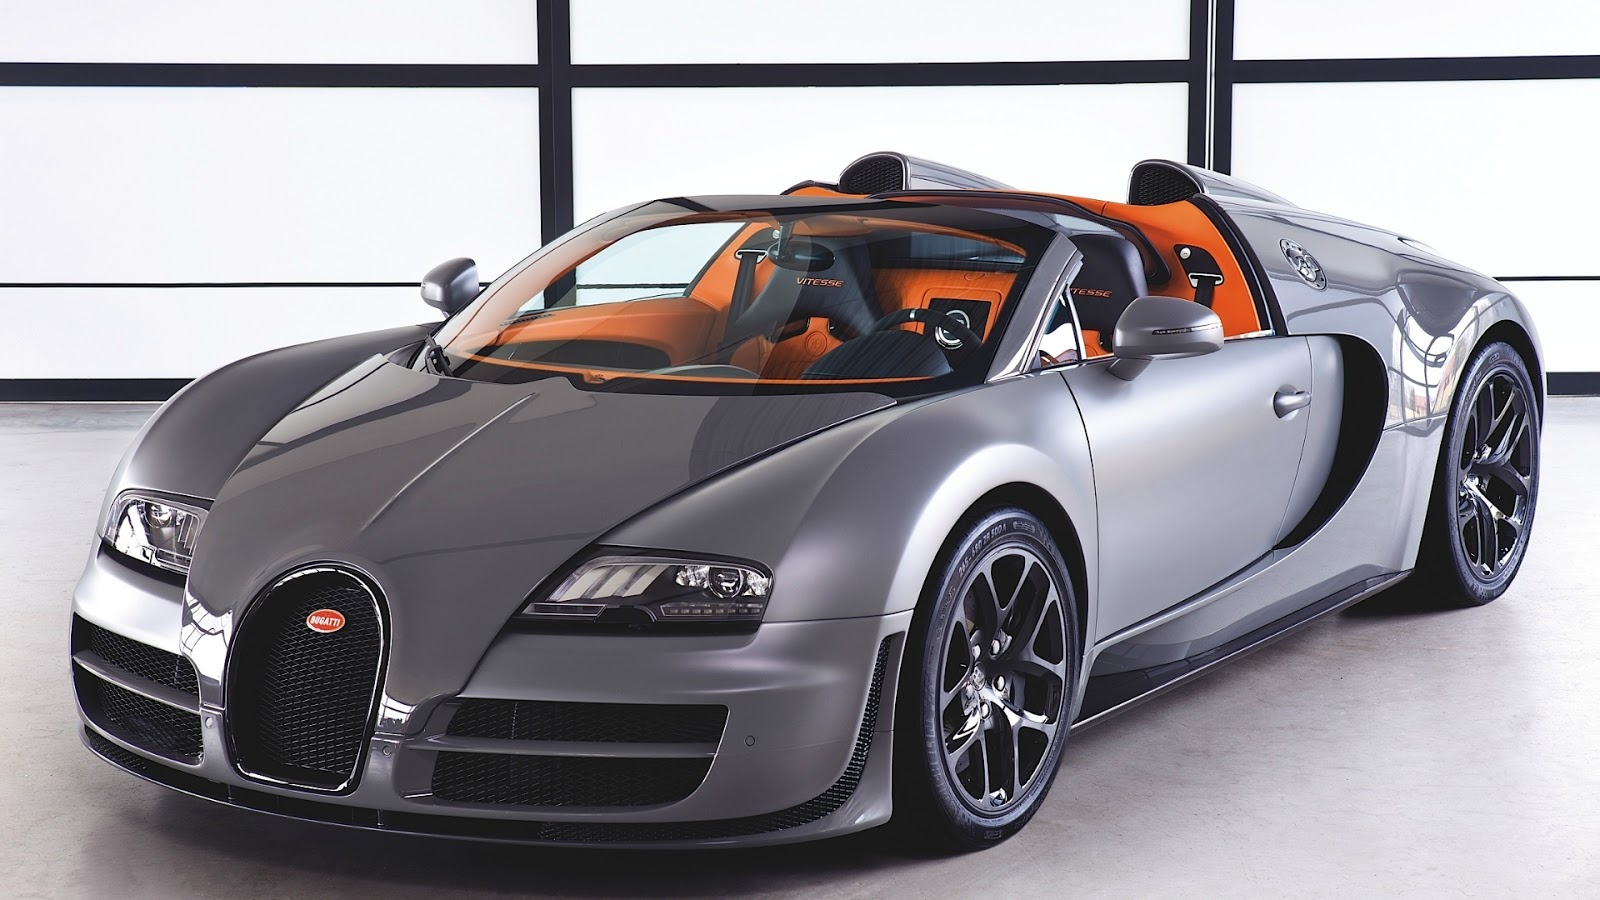 iWallpapers: BUGATTI VEYRON HD WALLPAPERS